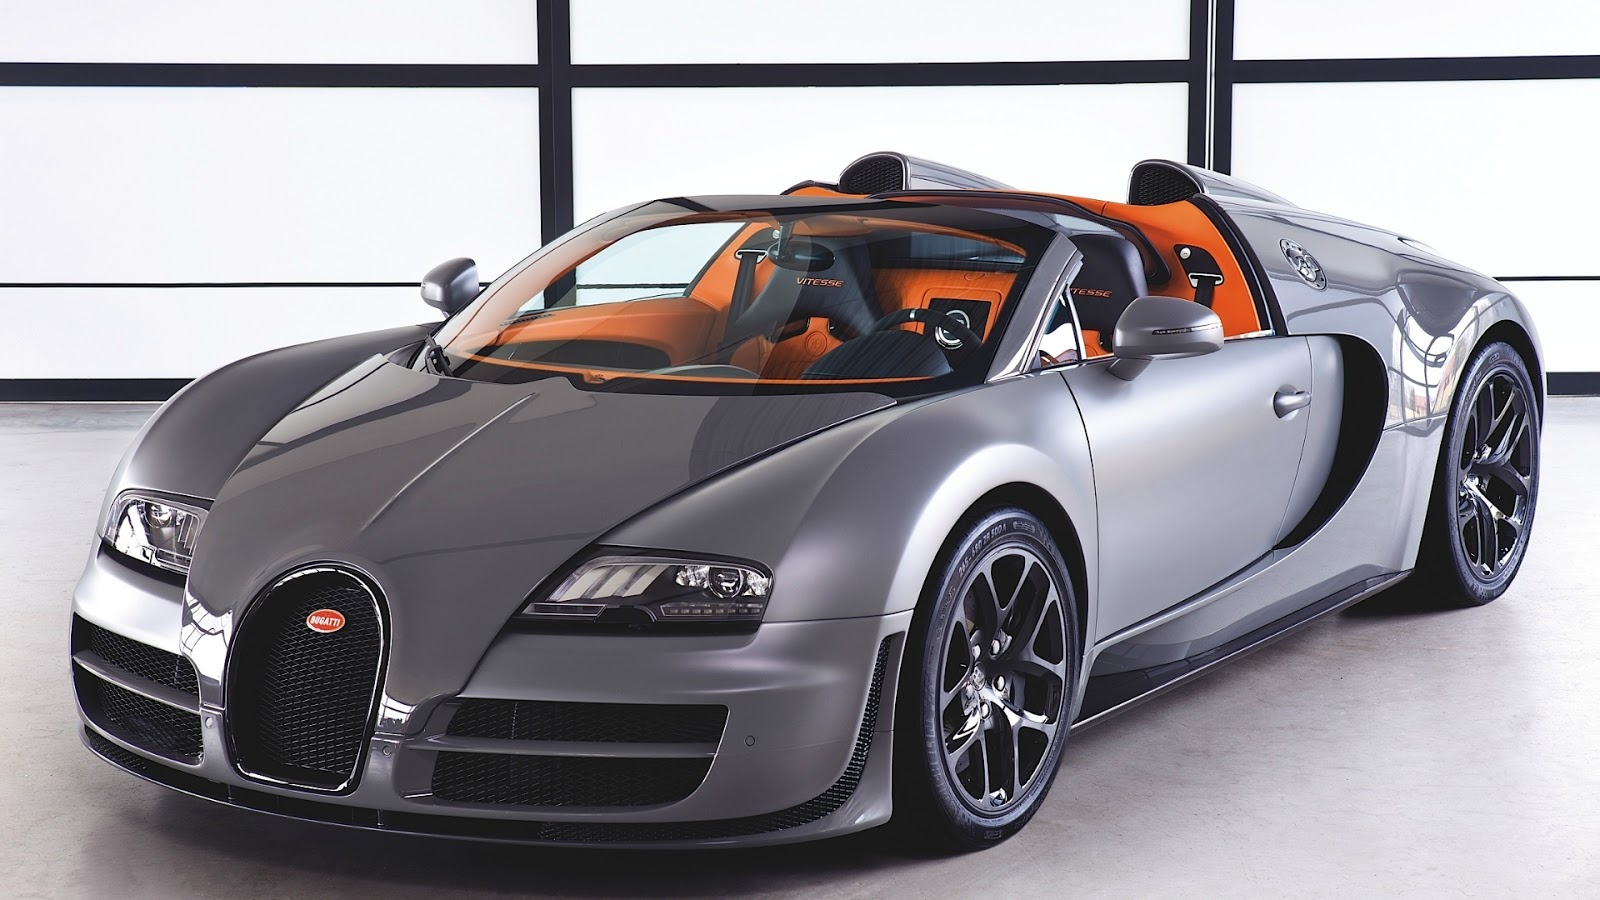 iWallpapers: BUGATTI VEYRON HD WALLPAPERS